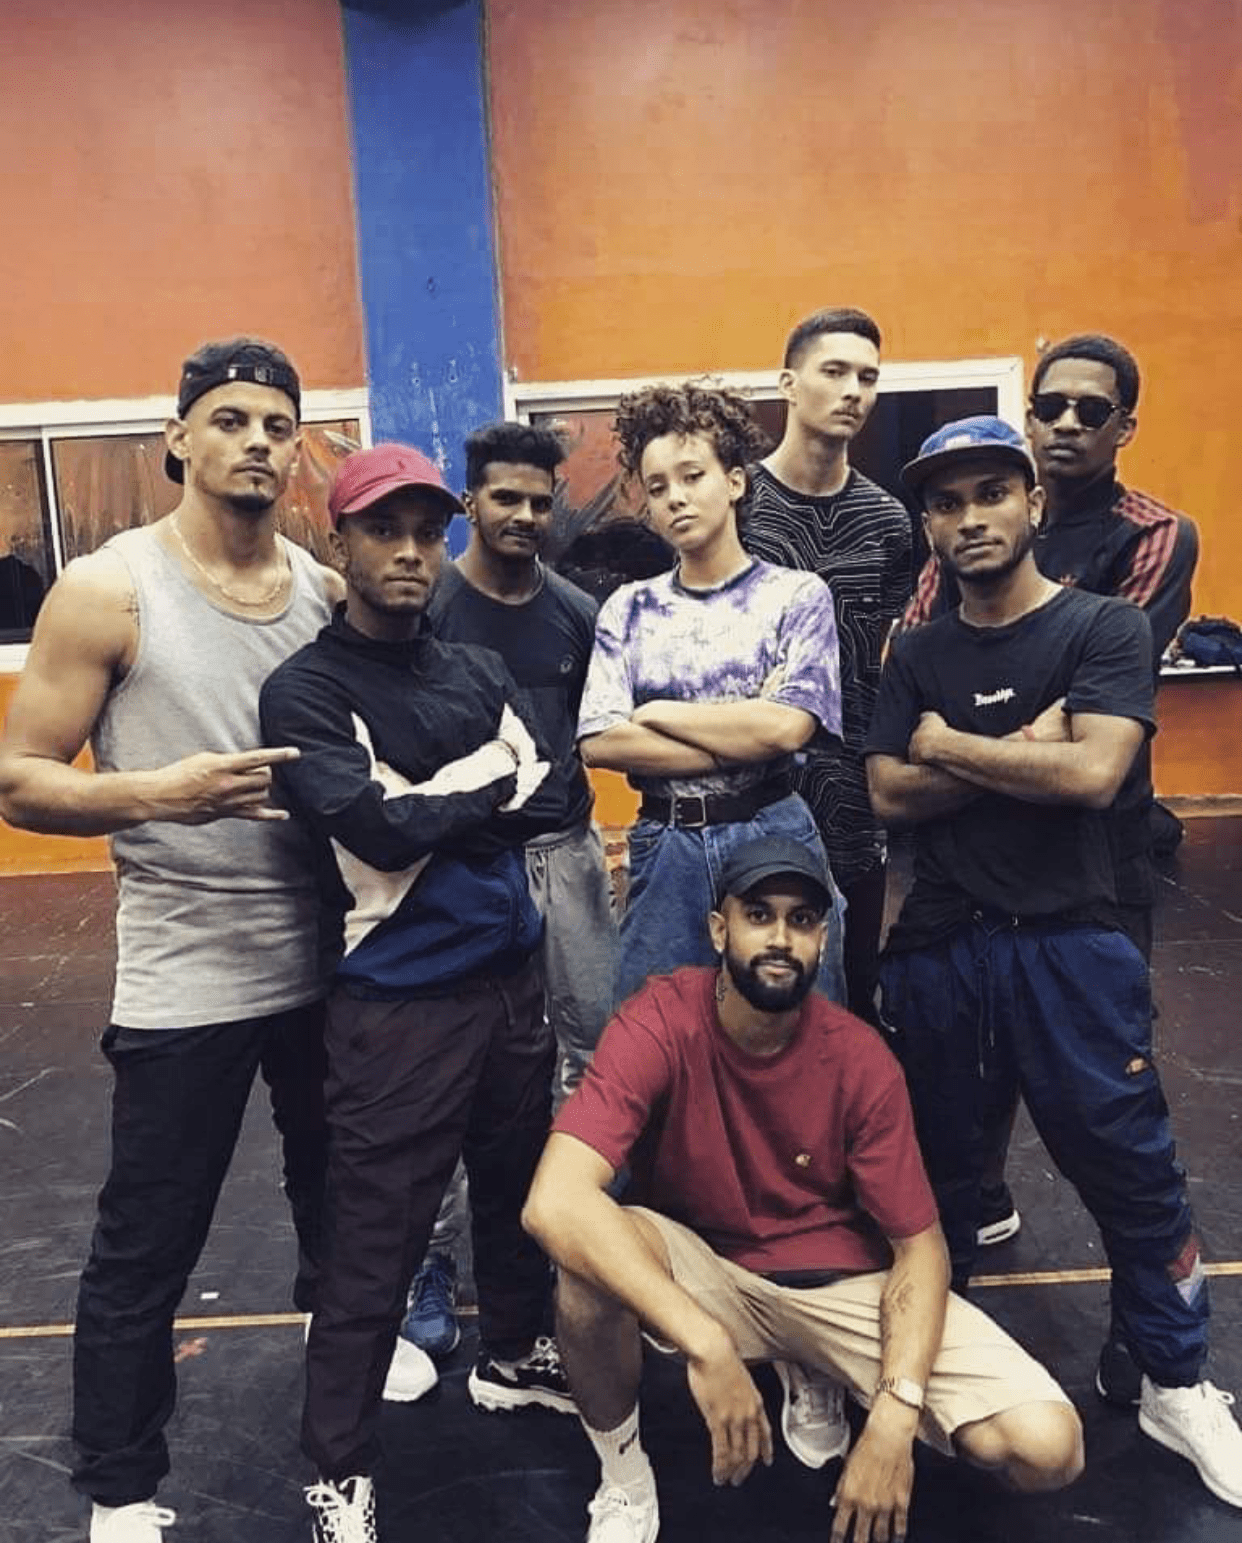 gary-break-dance-kap-2019